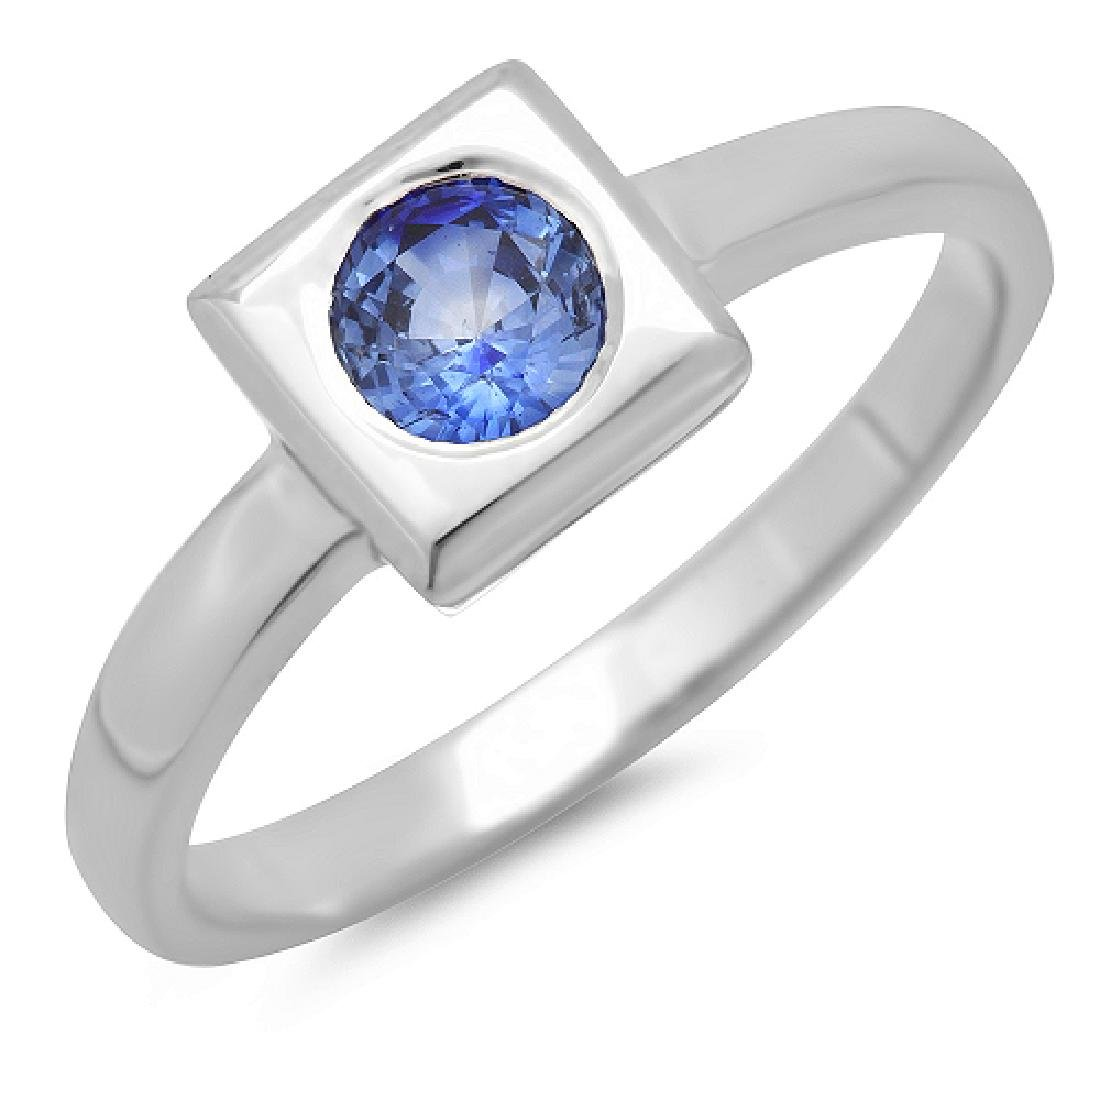 0.50 Carat Natural Sapphire 18K Solid White Gold Ring